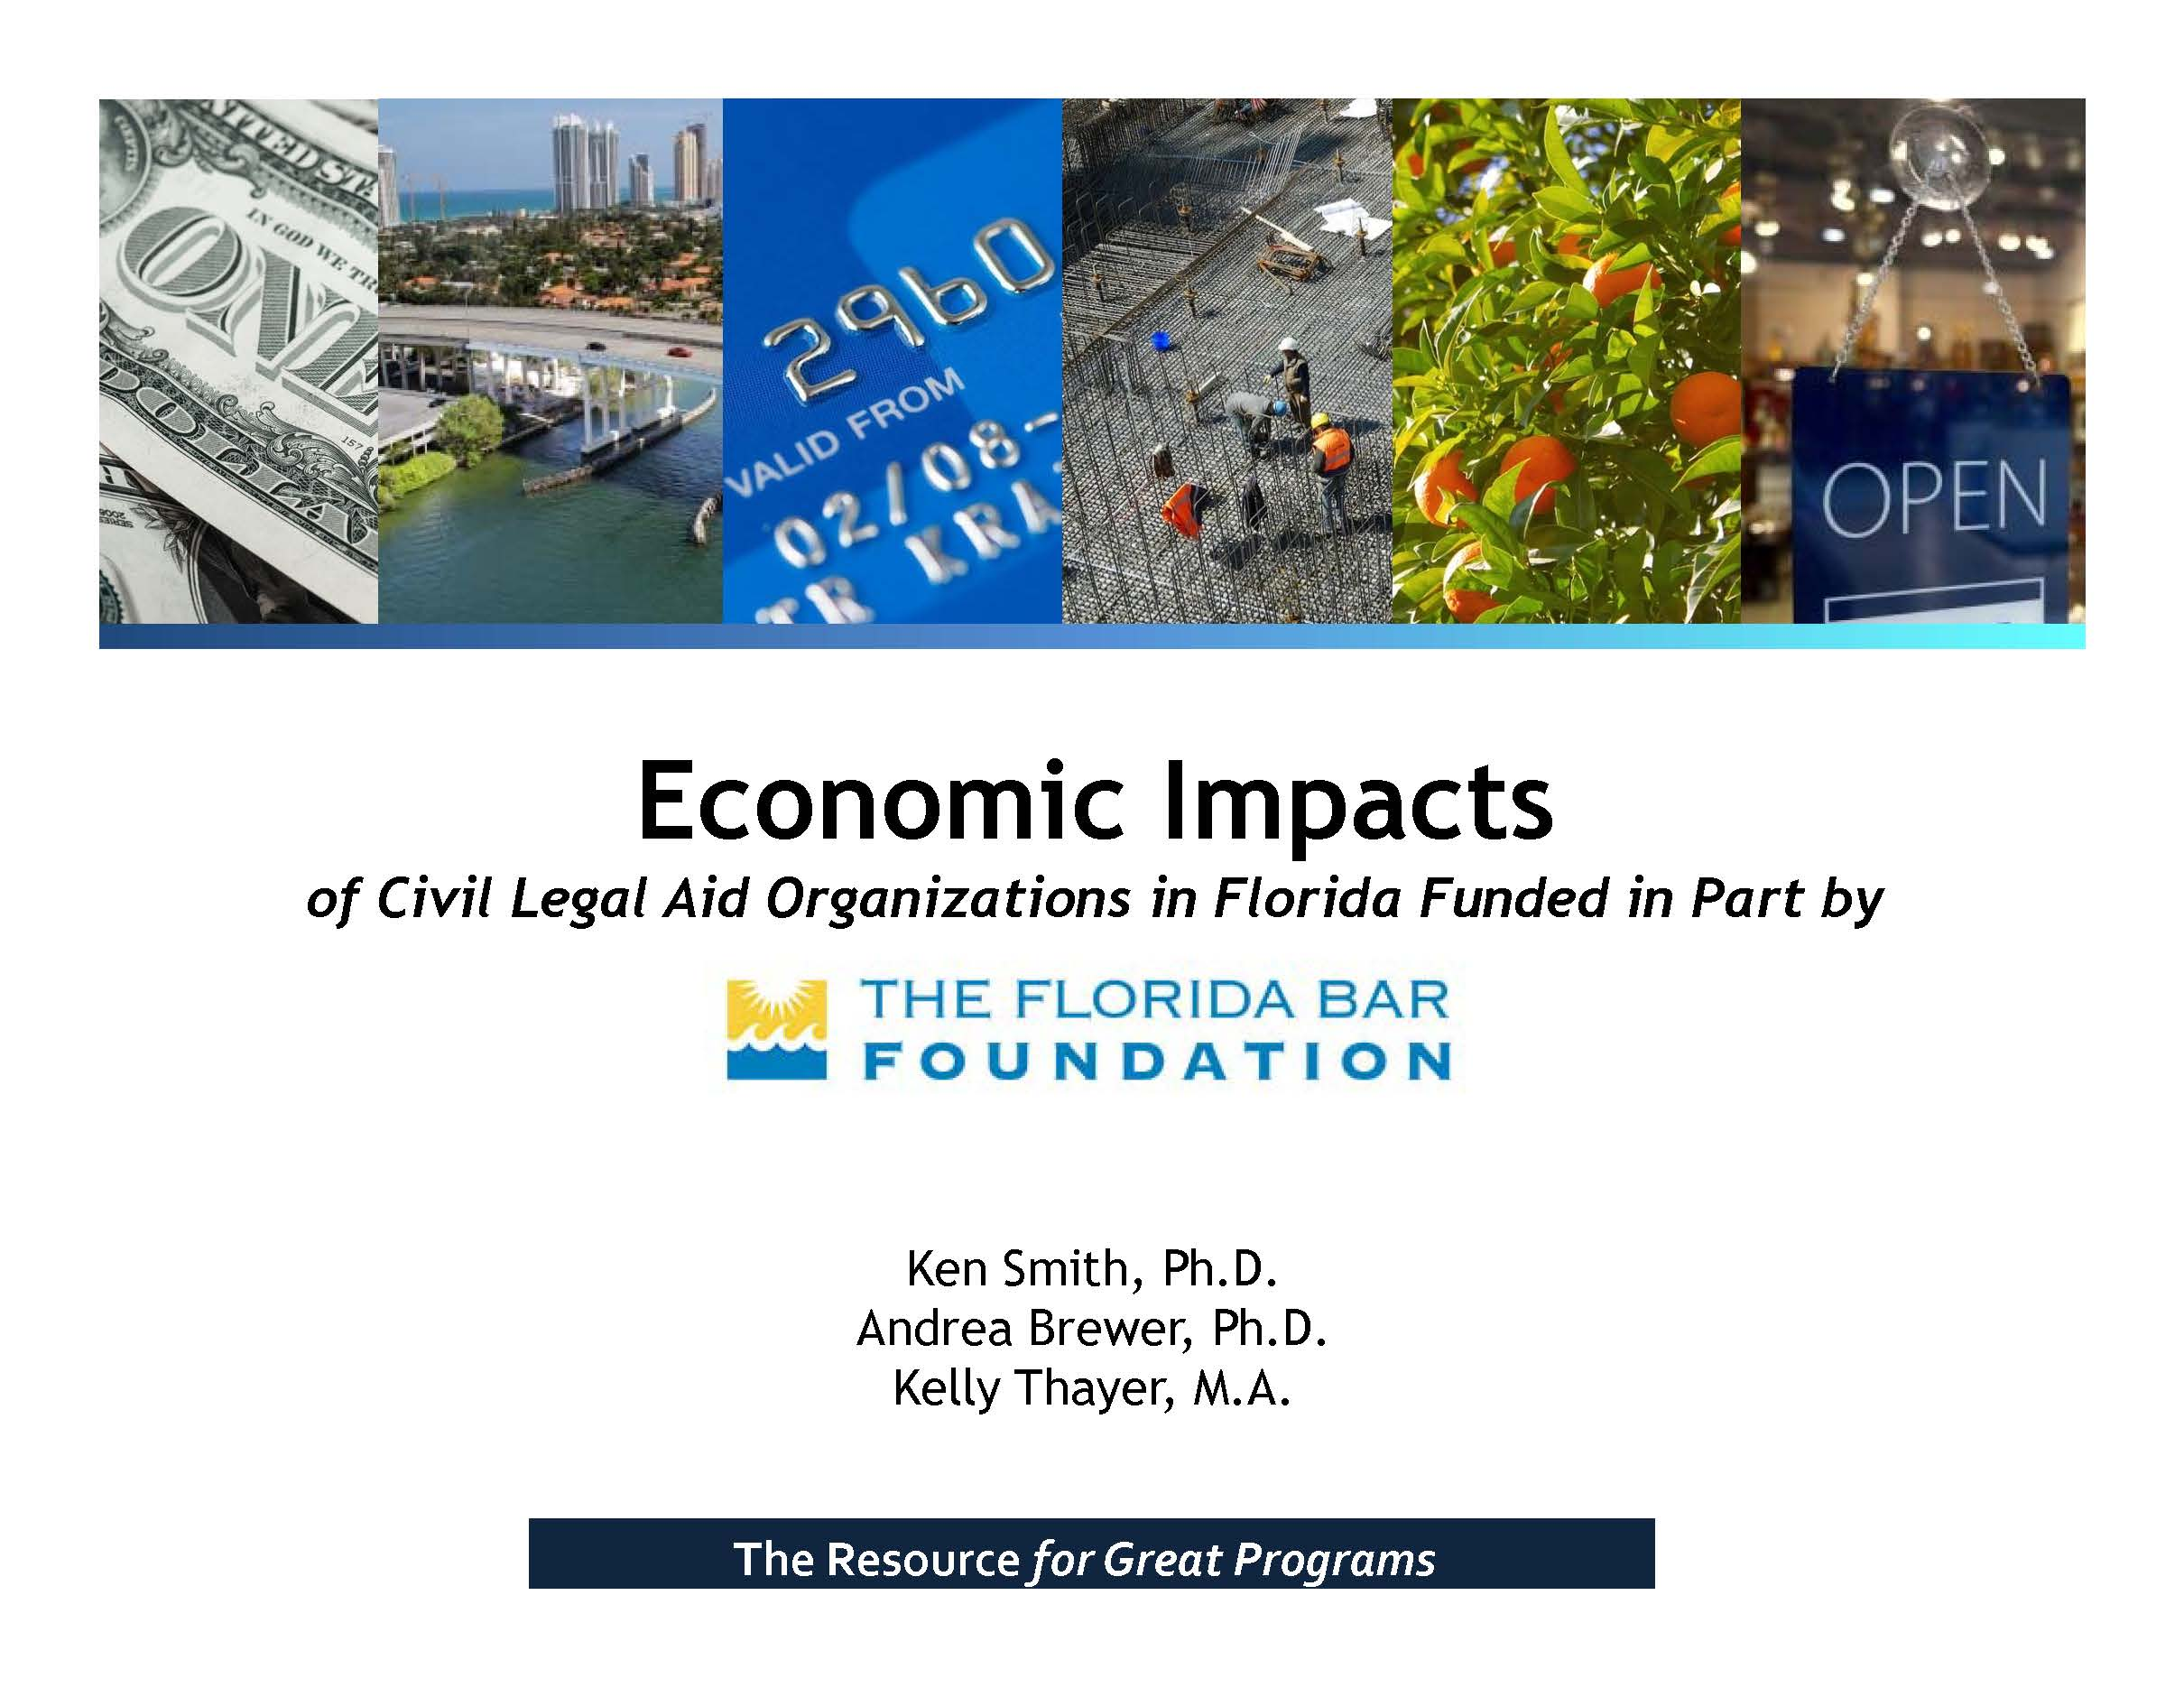 Economic Impacts of Civil Legal Aid Organizations in Florida Presentation